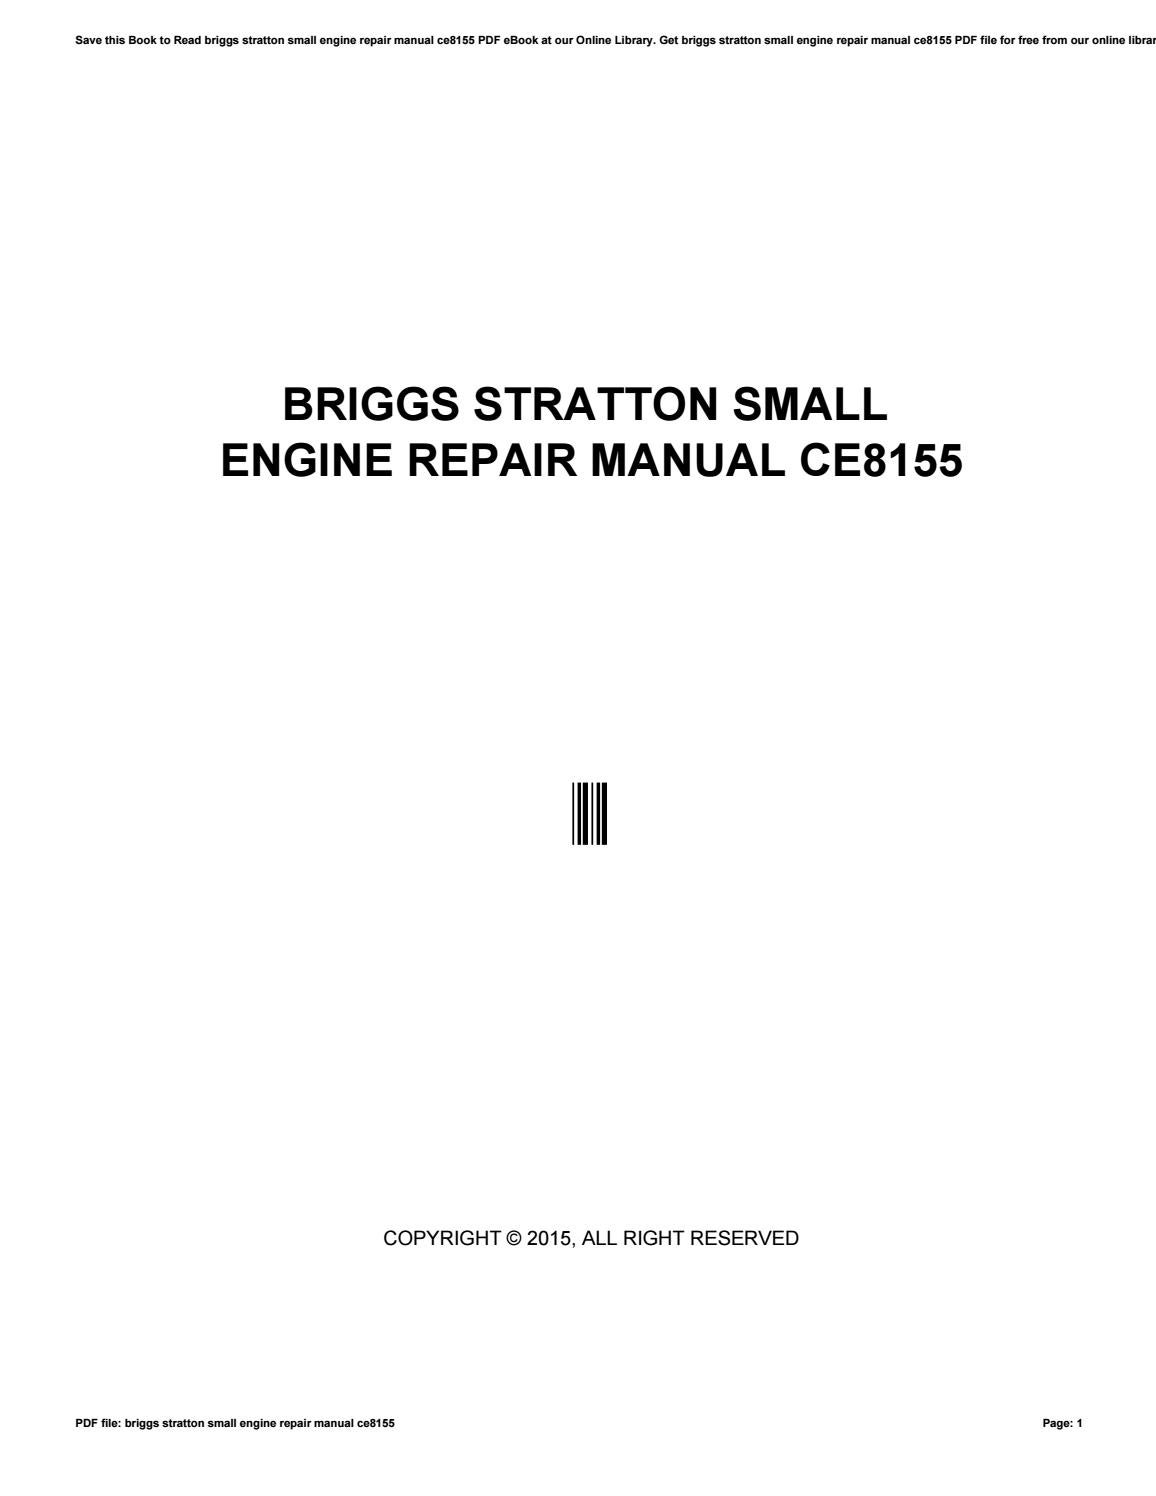 Briggs stratton small engine repair manual ce8155 by e935 issuu fandeluxe Choice Image